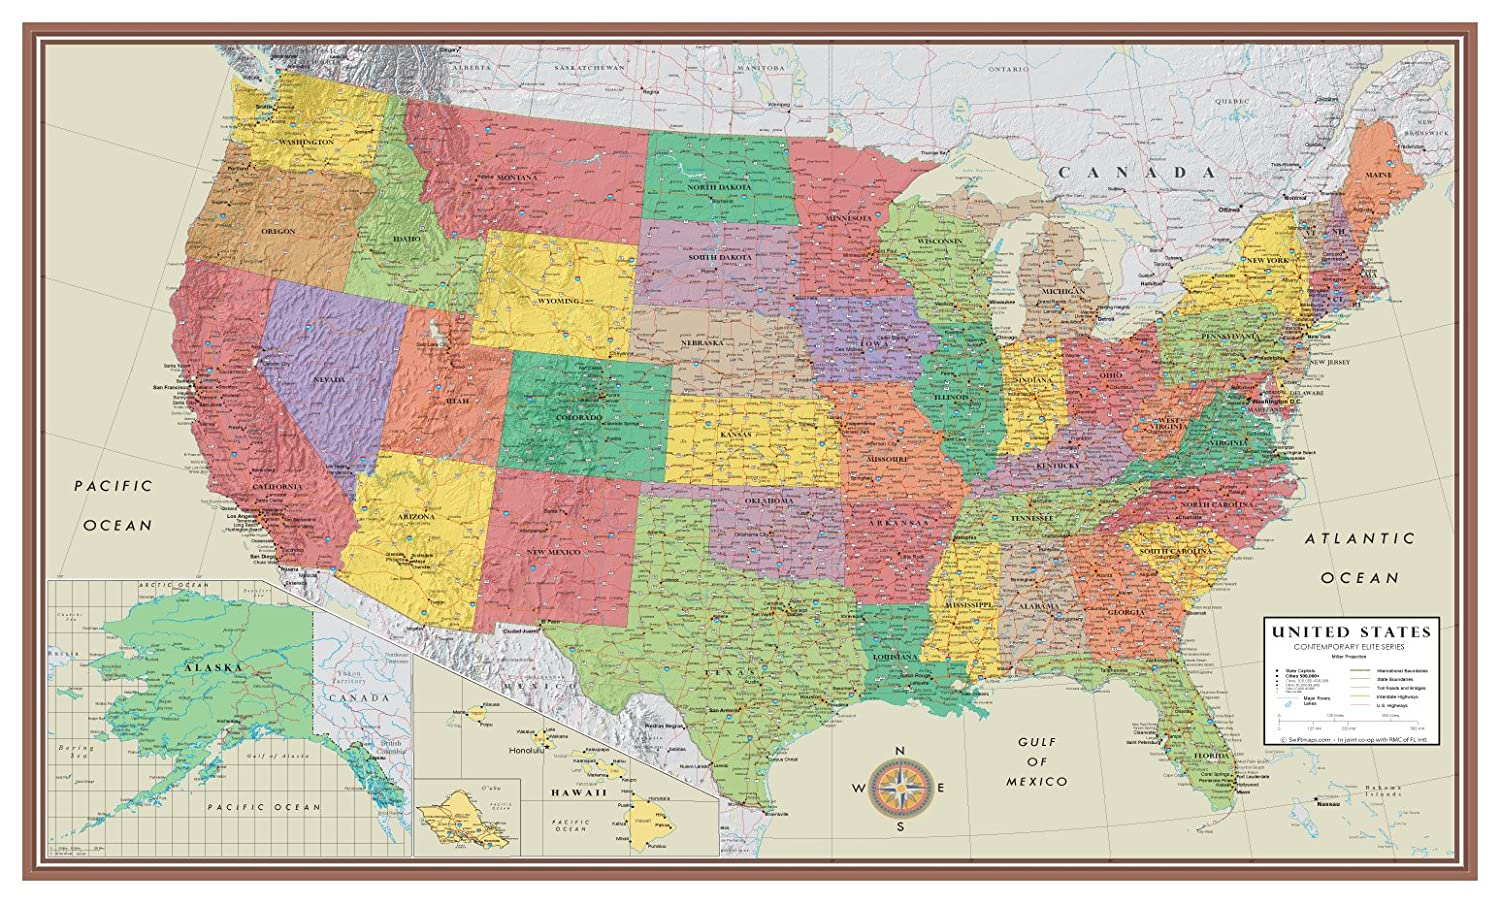 Amazoncom X Huge United States USA Contemporary Elite Wall - United state maps